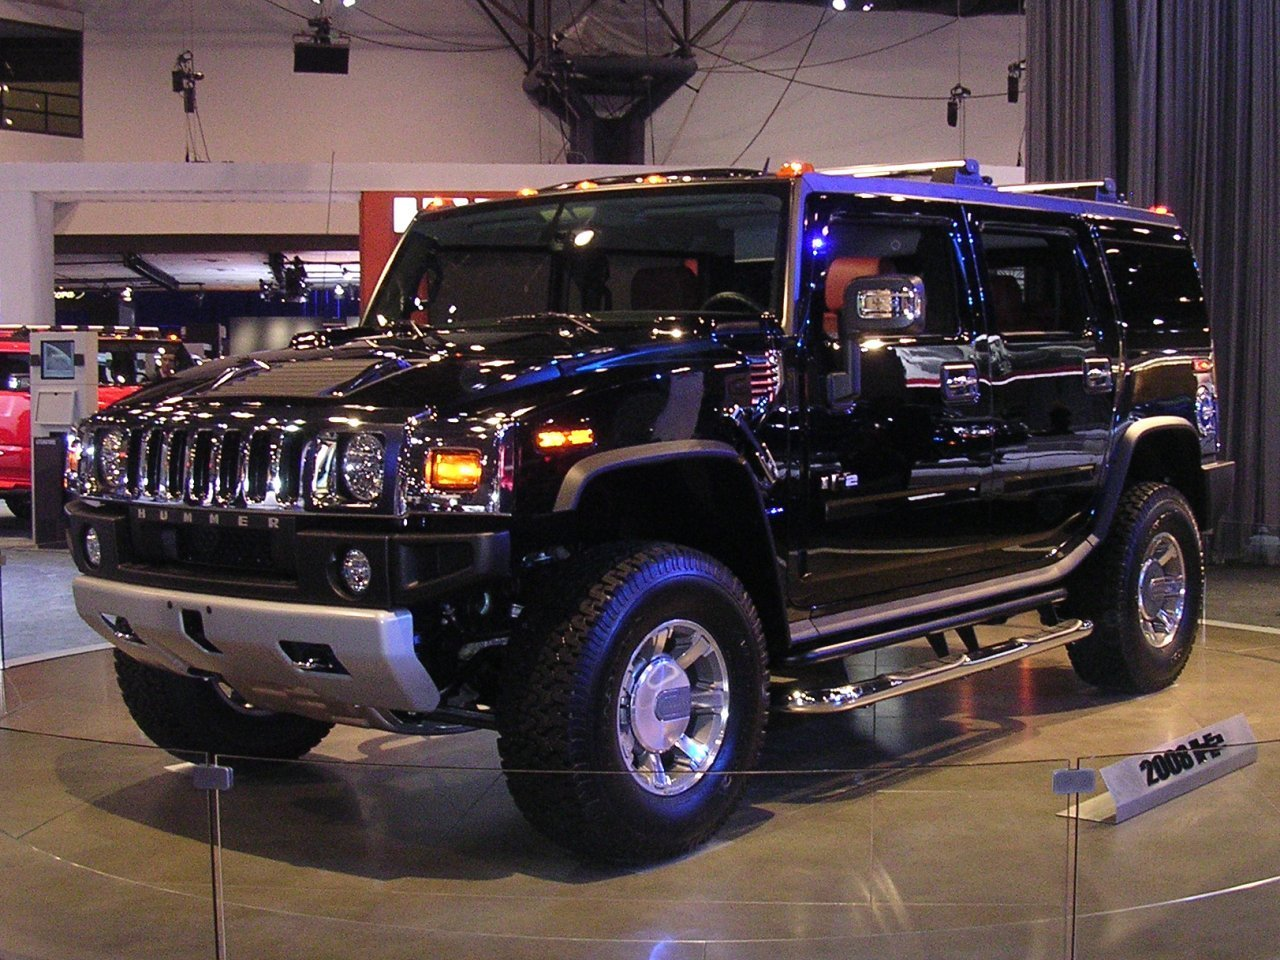 hummers images hummer hd wallpaper and background photos. Black Bedroom Furniture Sets. Home Design Ideas